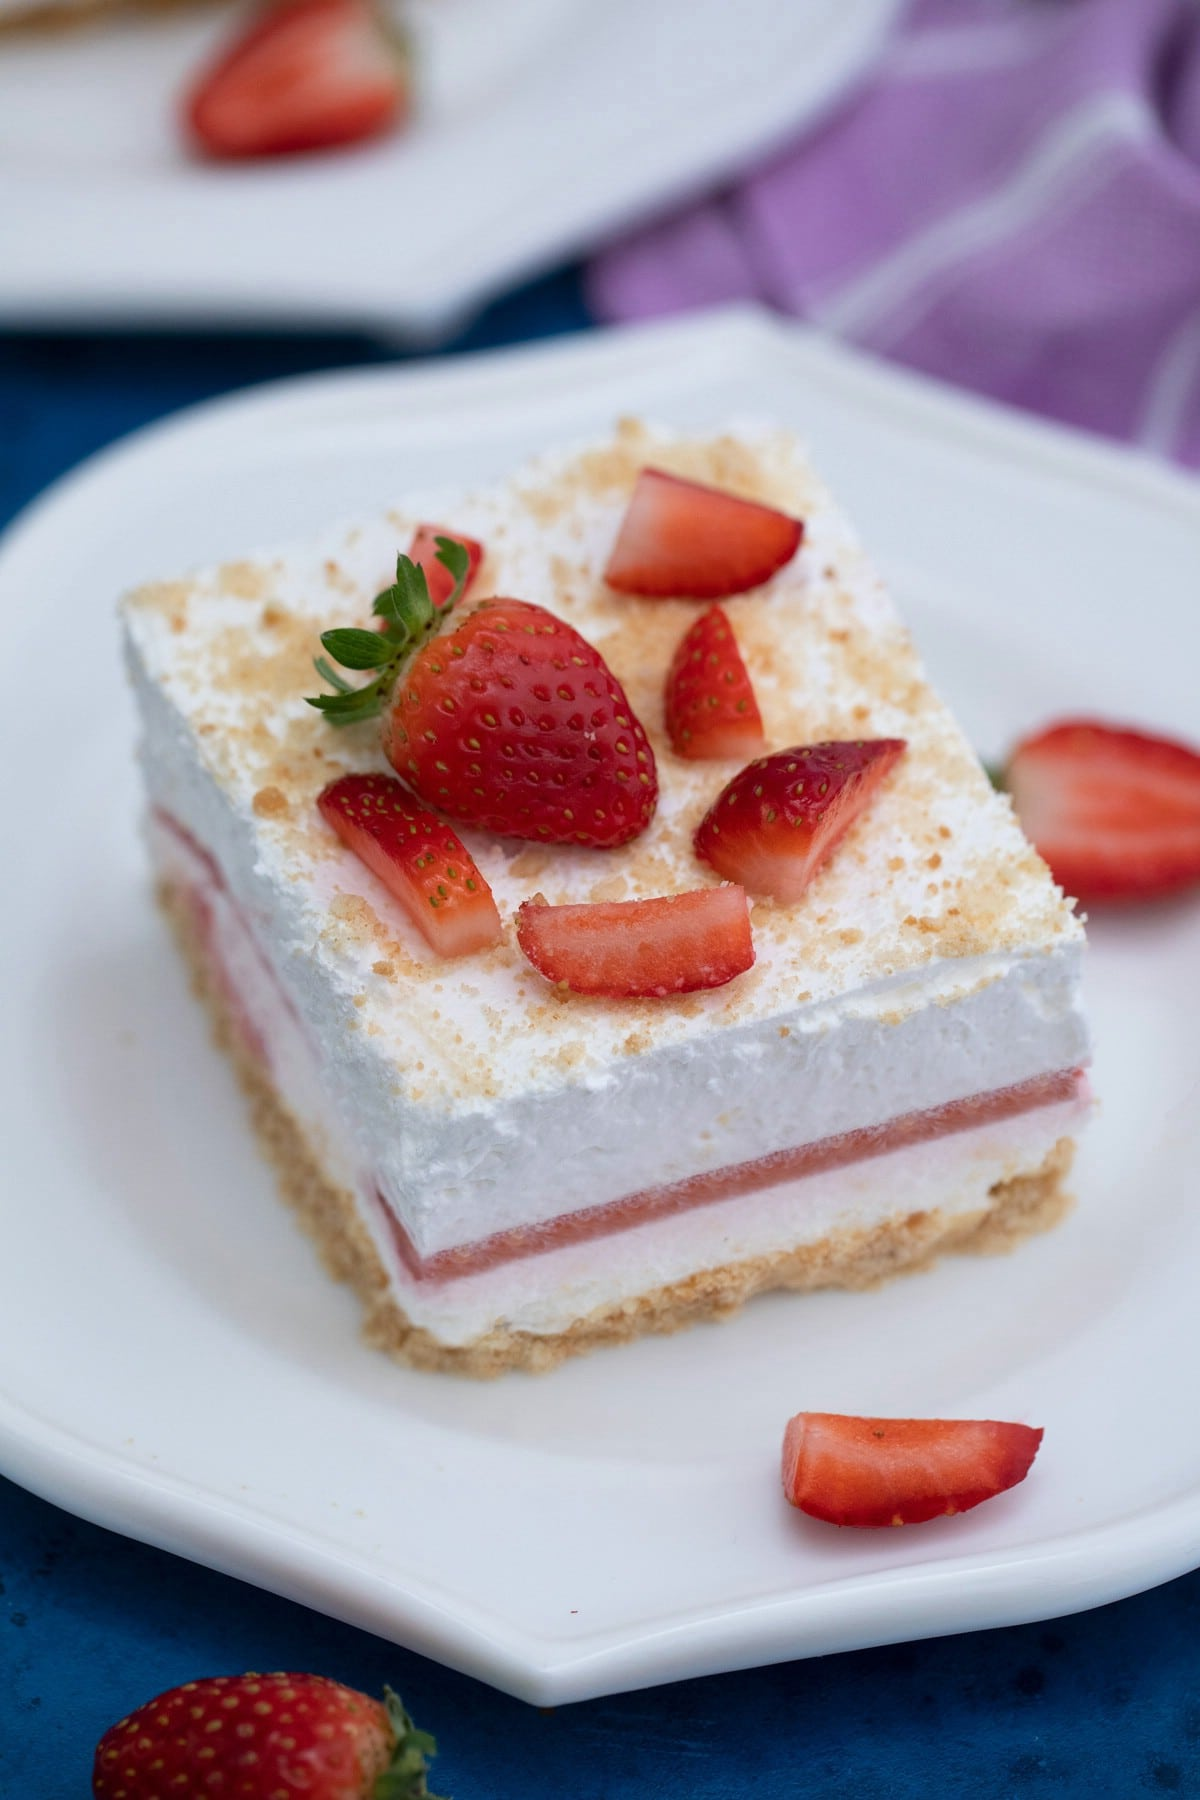 Strawberry topped cheesecake on plate